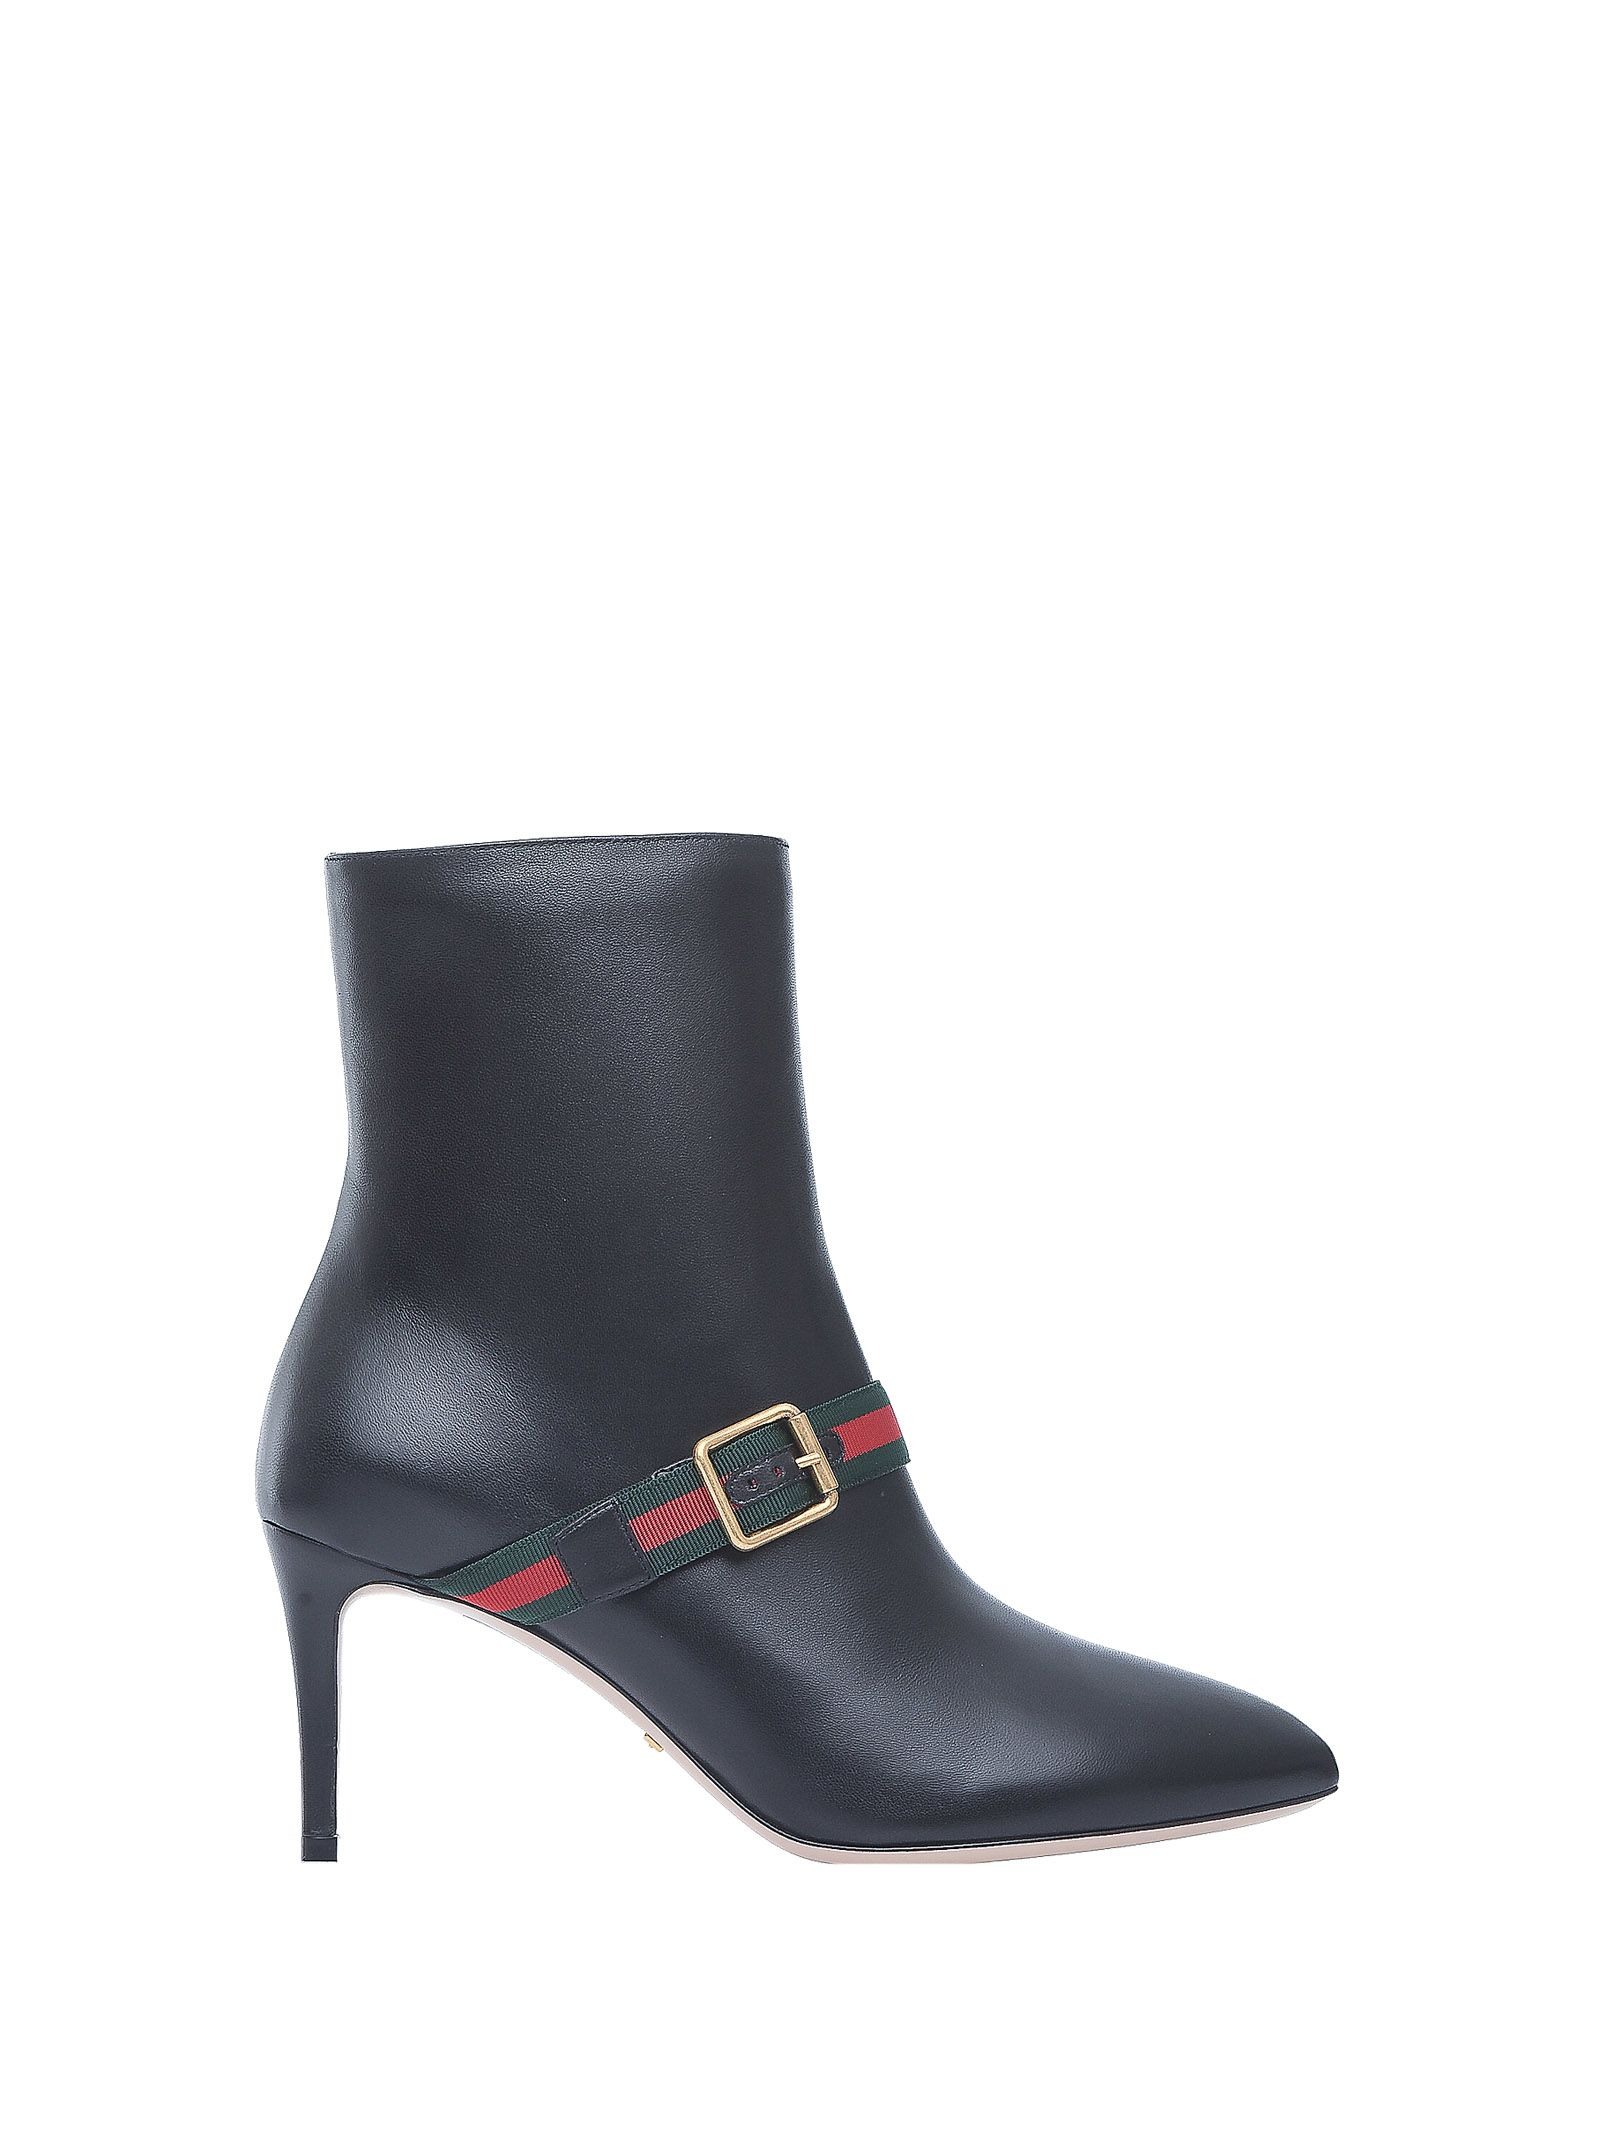 Gucci Gucci Black Leather Ankle Boots Nero Women S